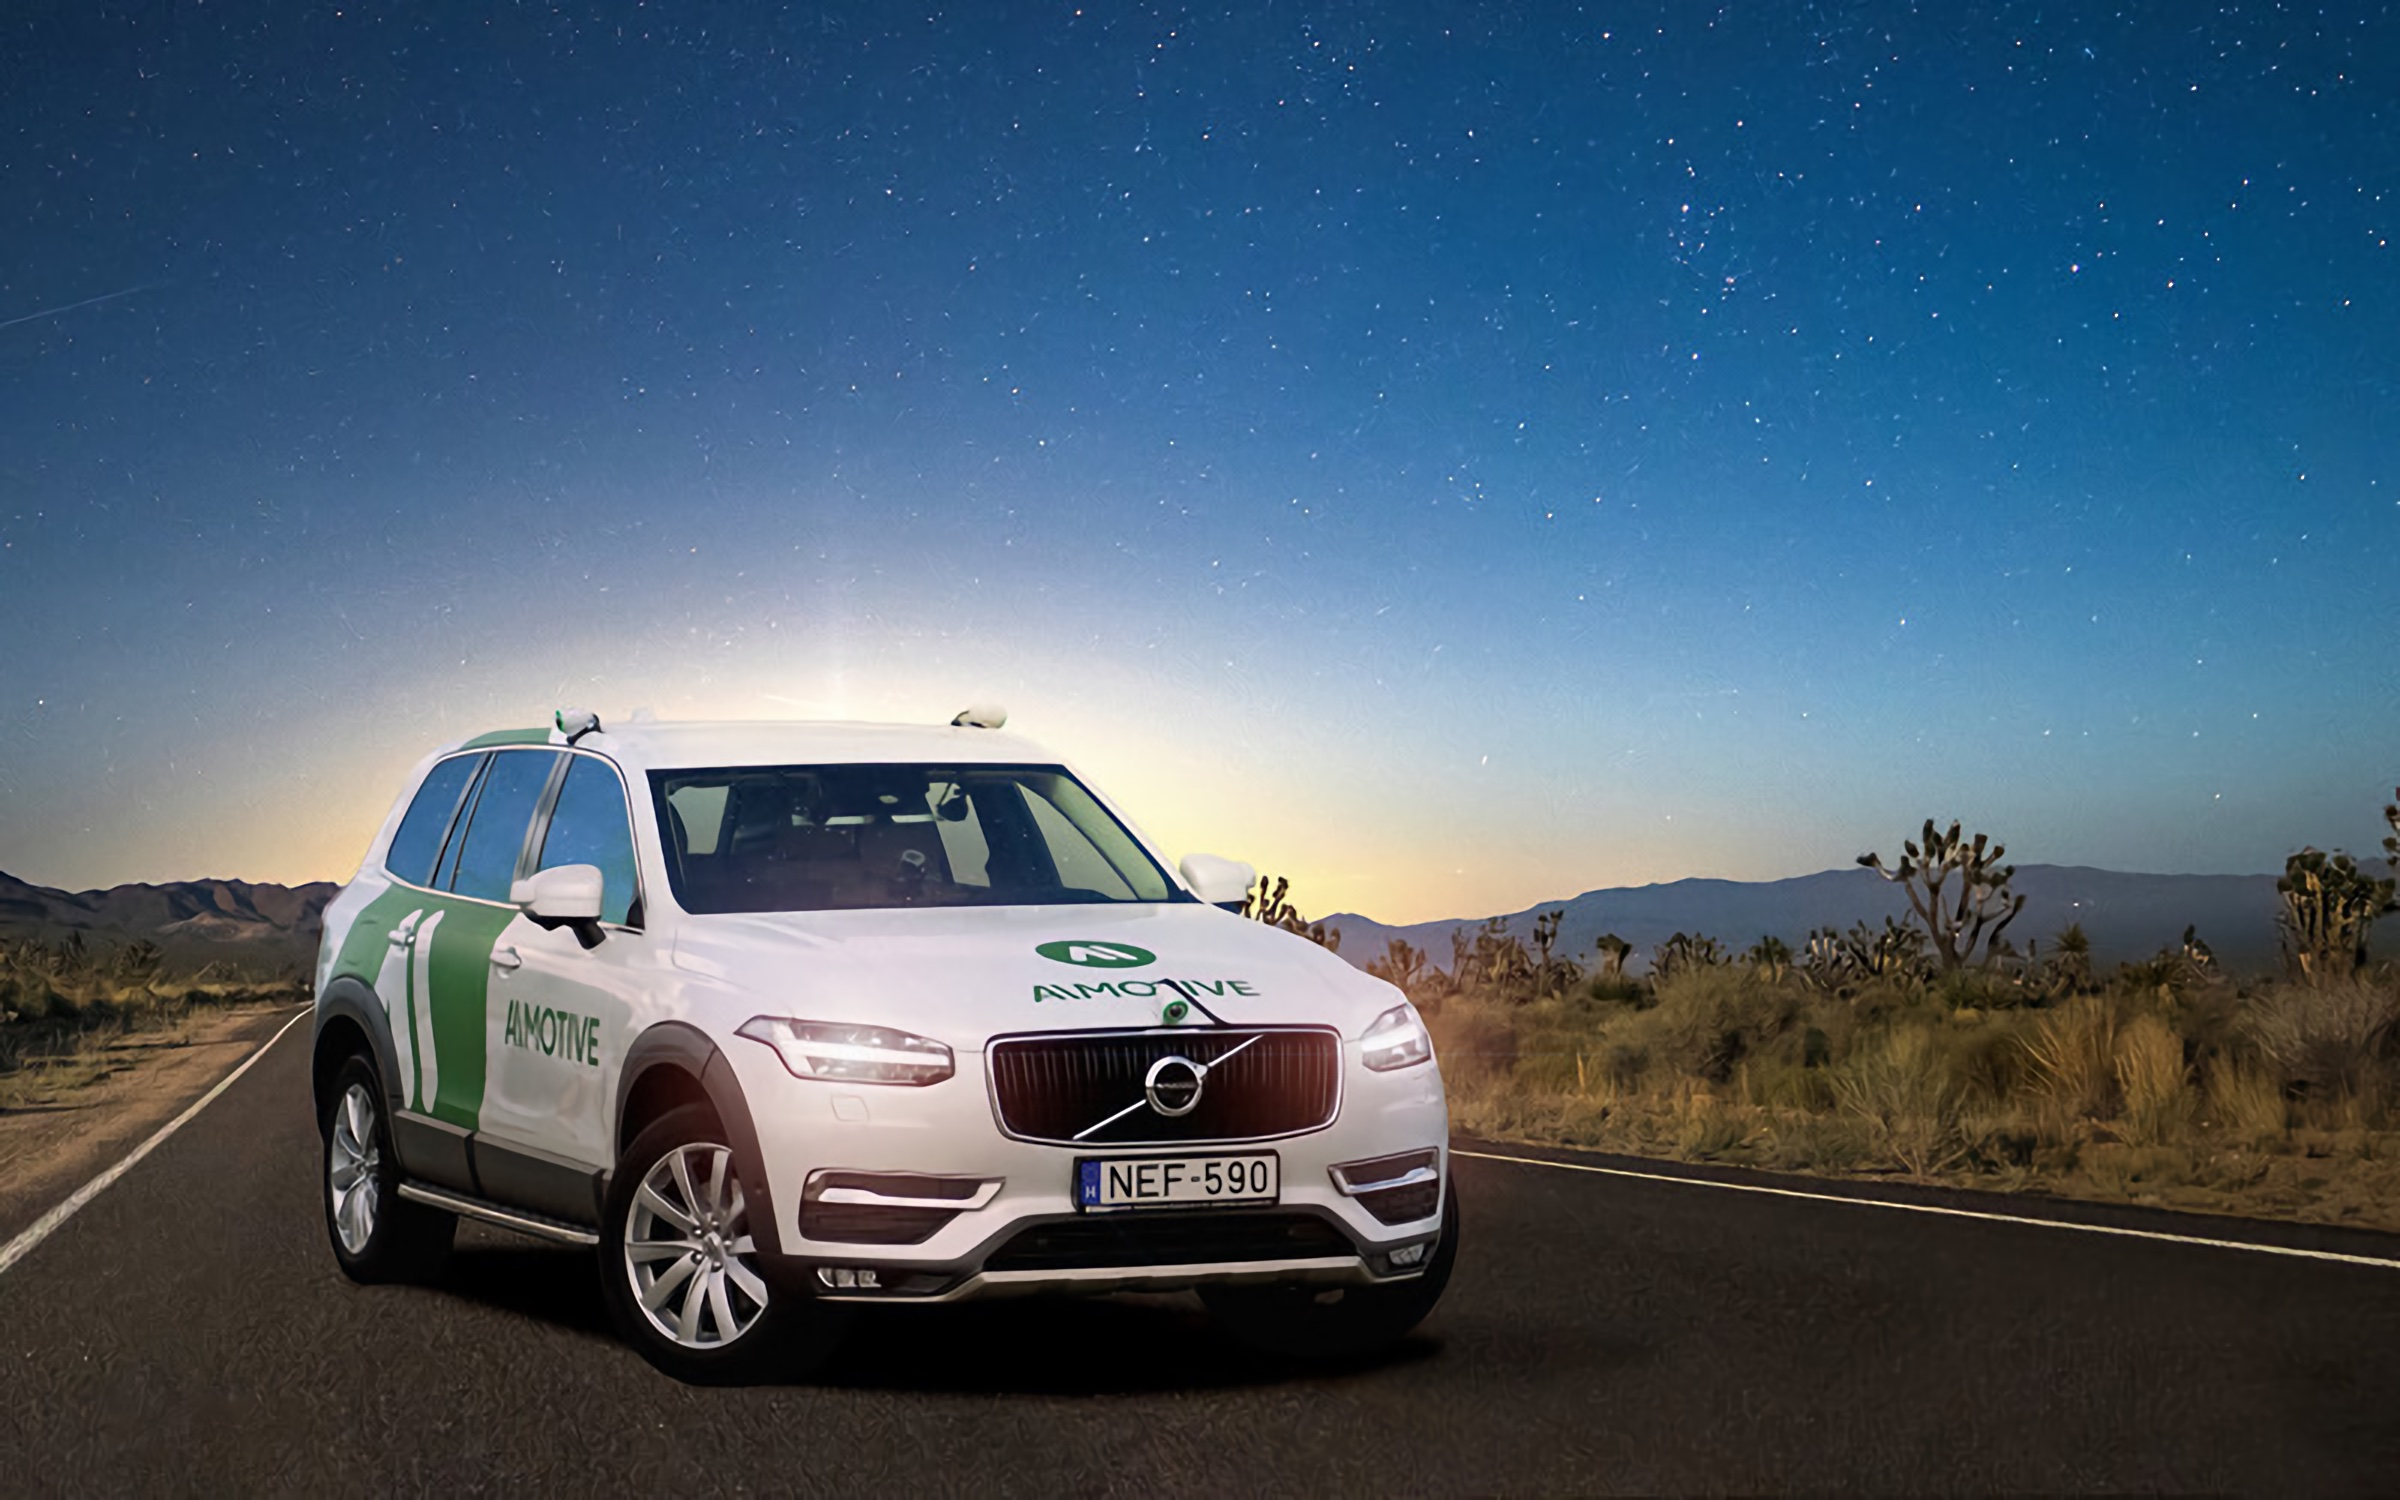 techcrunch.com - Darrell Etherington - Autonomous driving startup turns its AI expertise to space for automated satellite operation